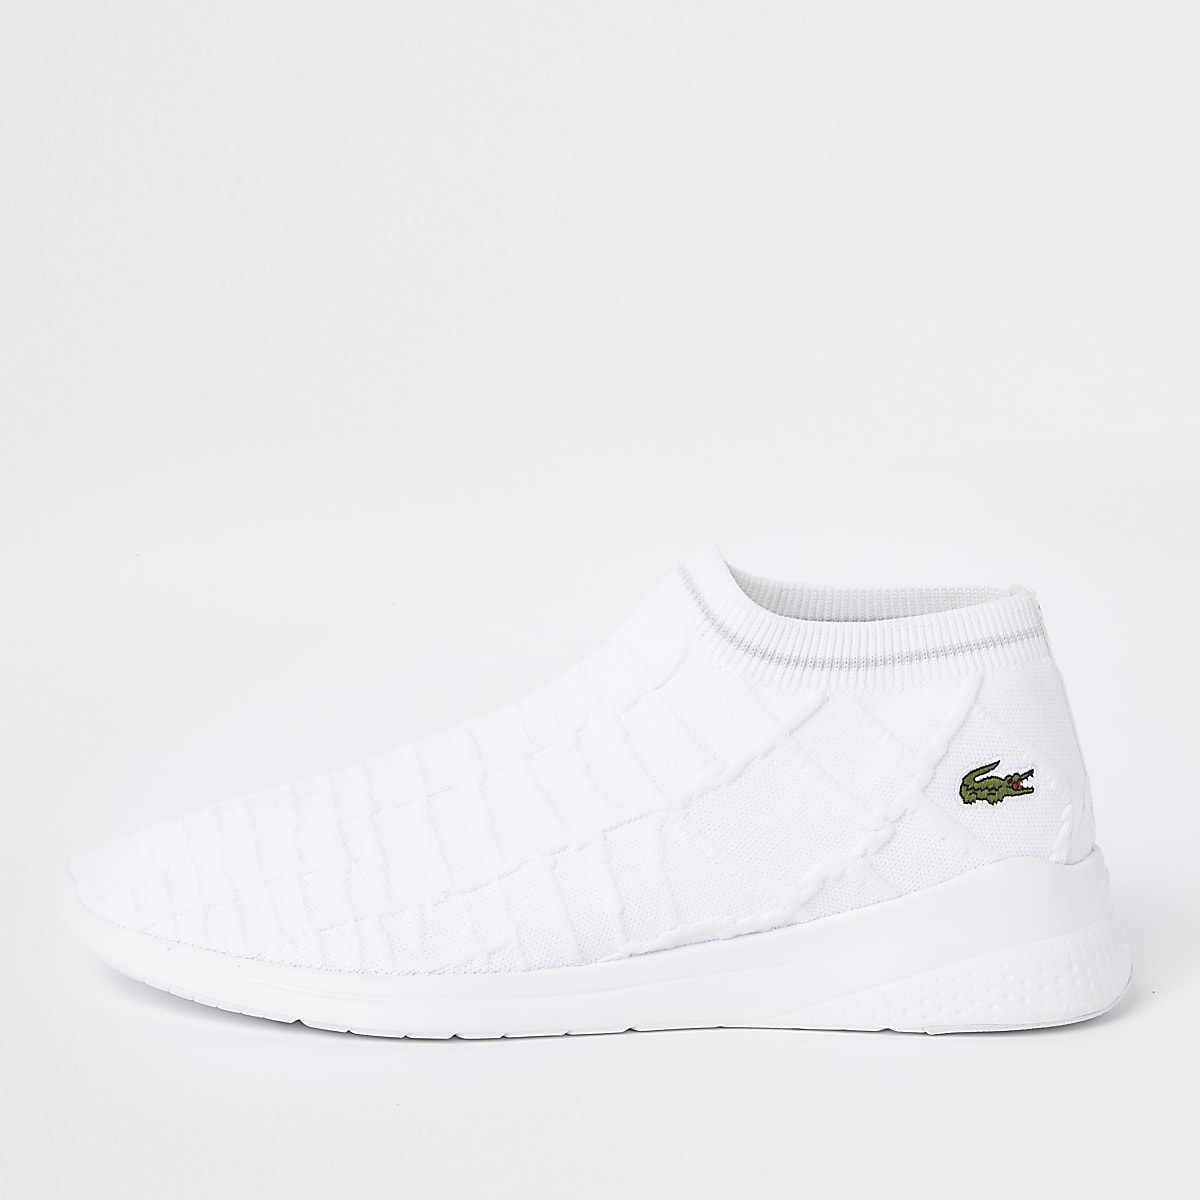 33bd54ee69ba Lacoste white sock trainers - Trainers - Shoes   Boots - men